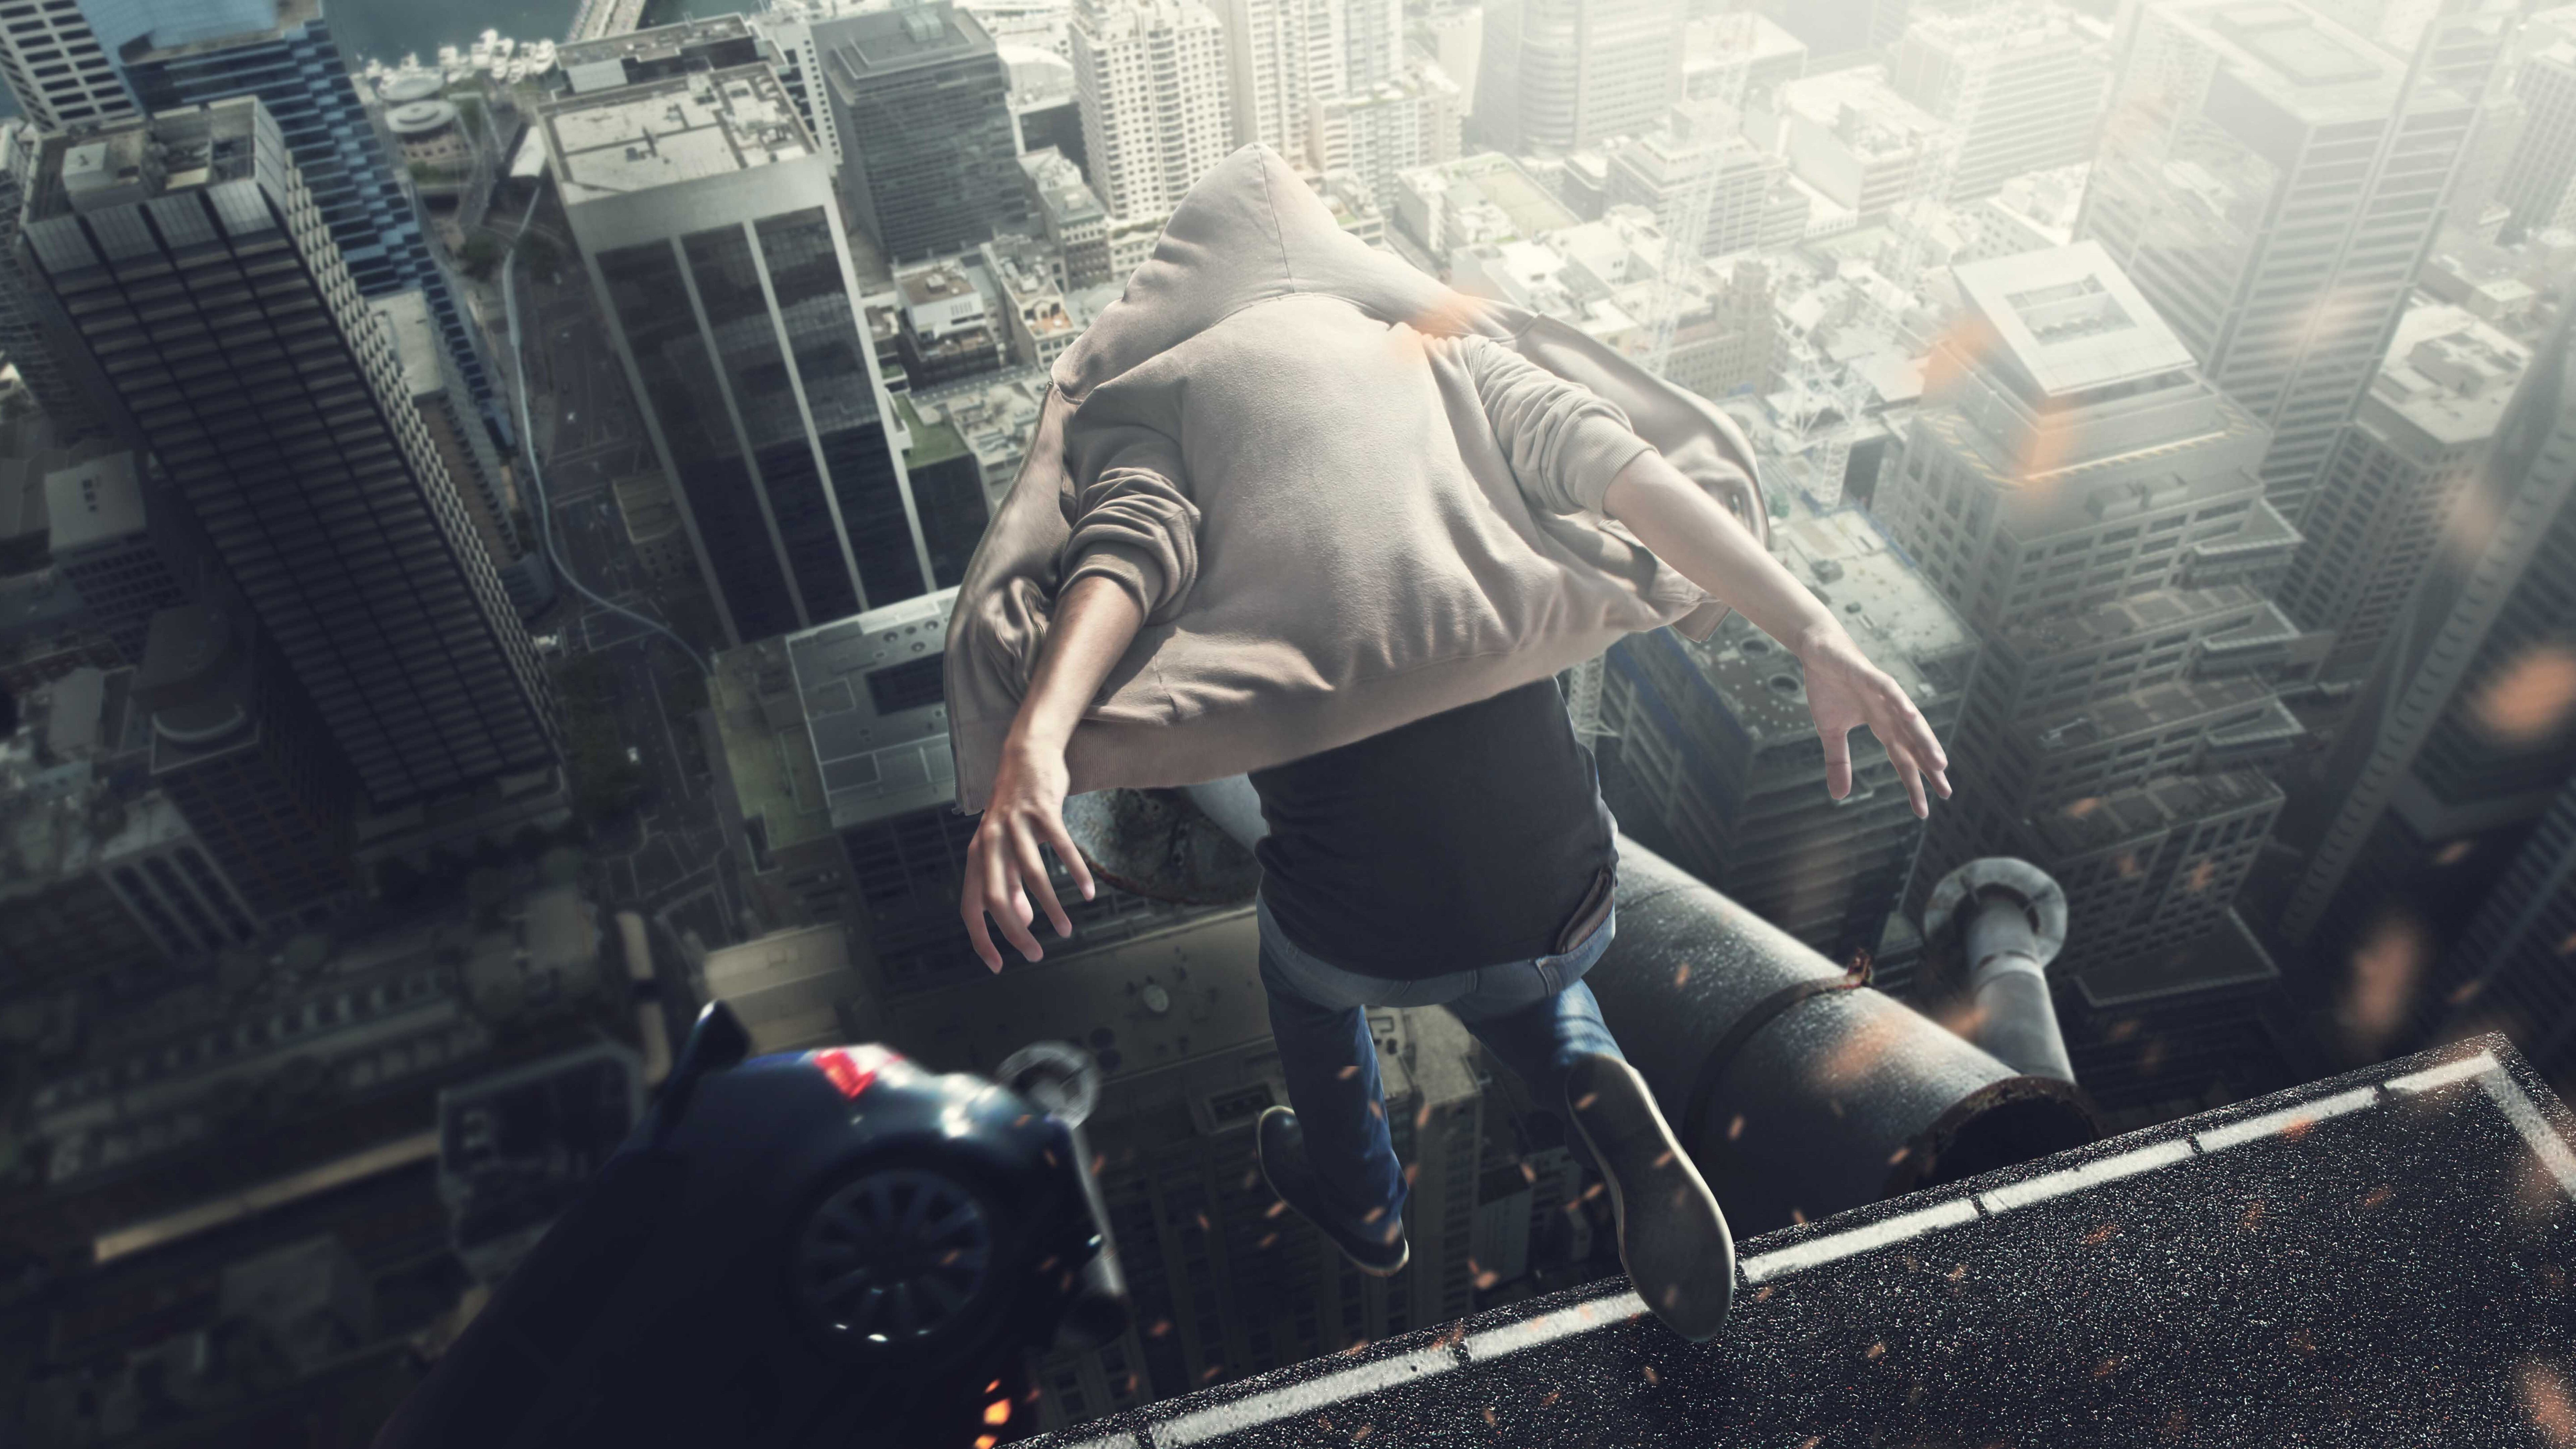 jump-from-the-building-8k-c5.jpg